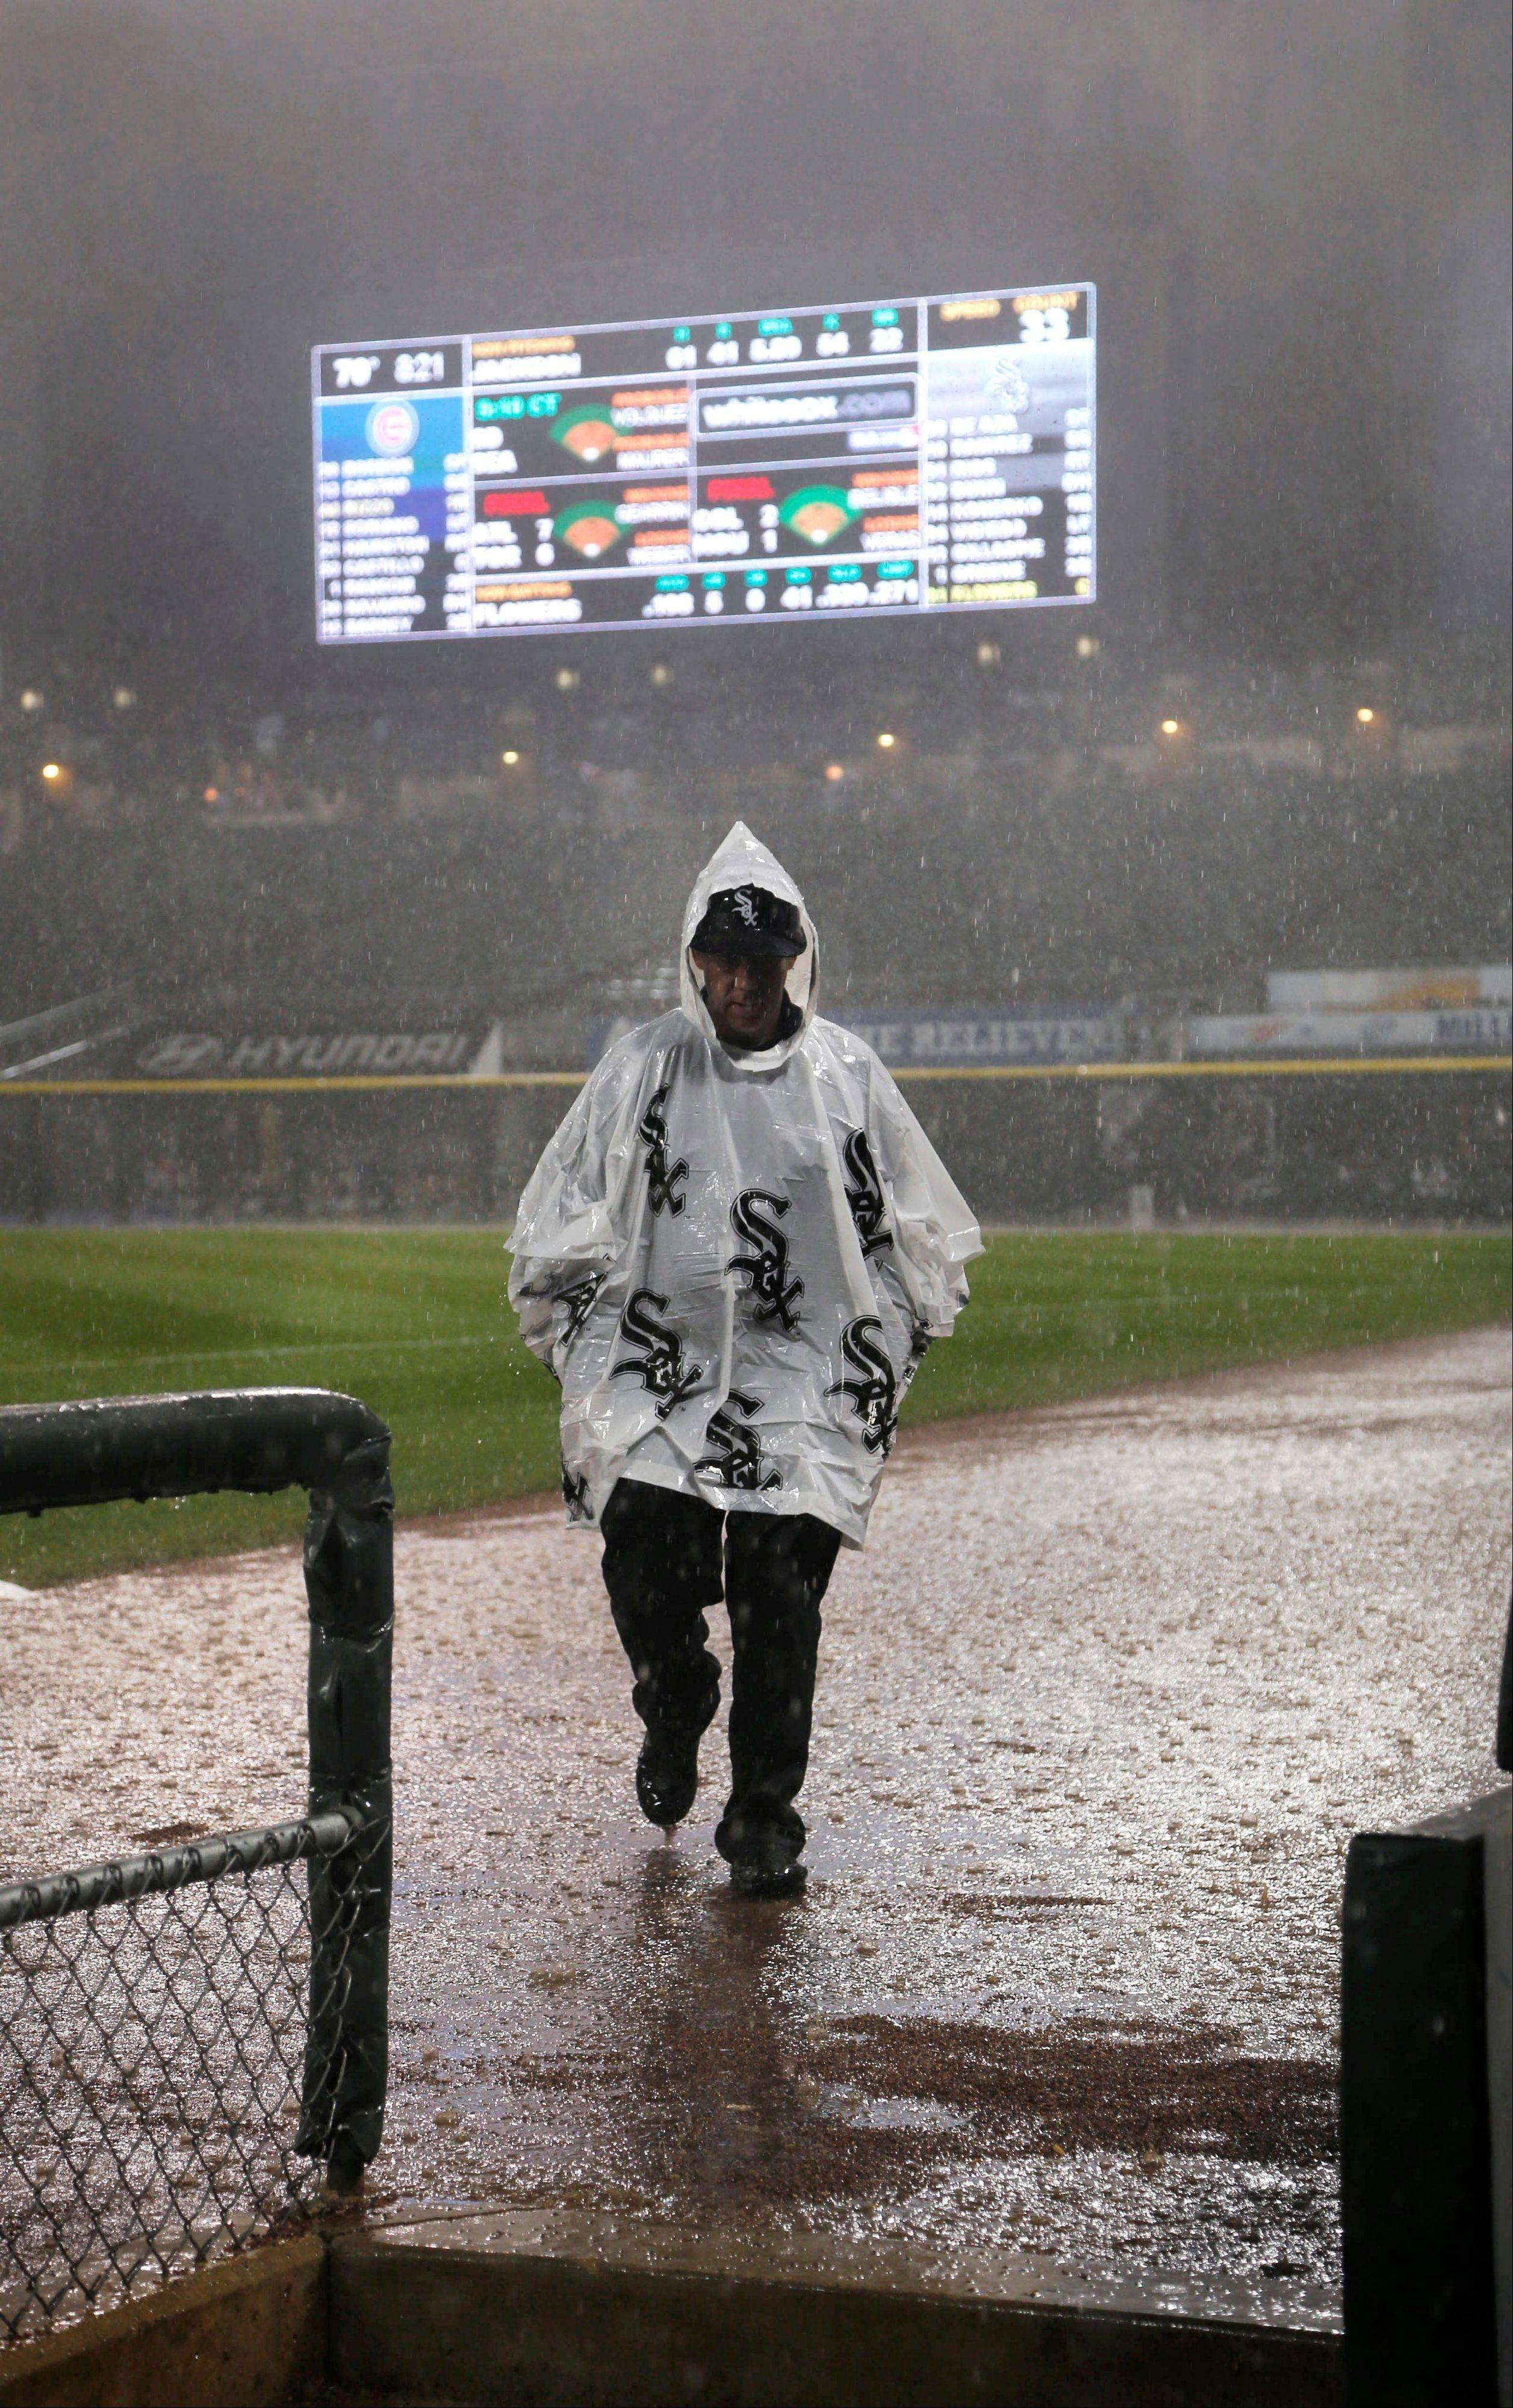 After getting rained out on May 28, the White Sox and the Cubs will play a makeup game on July 8 at U.S. Cellular Field.